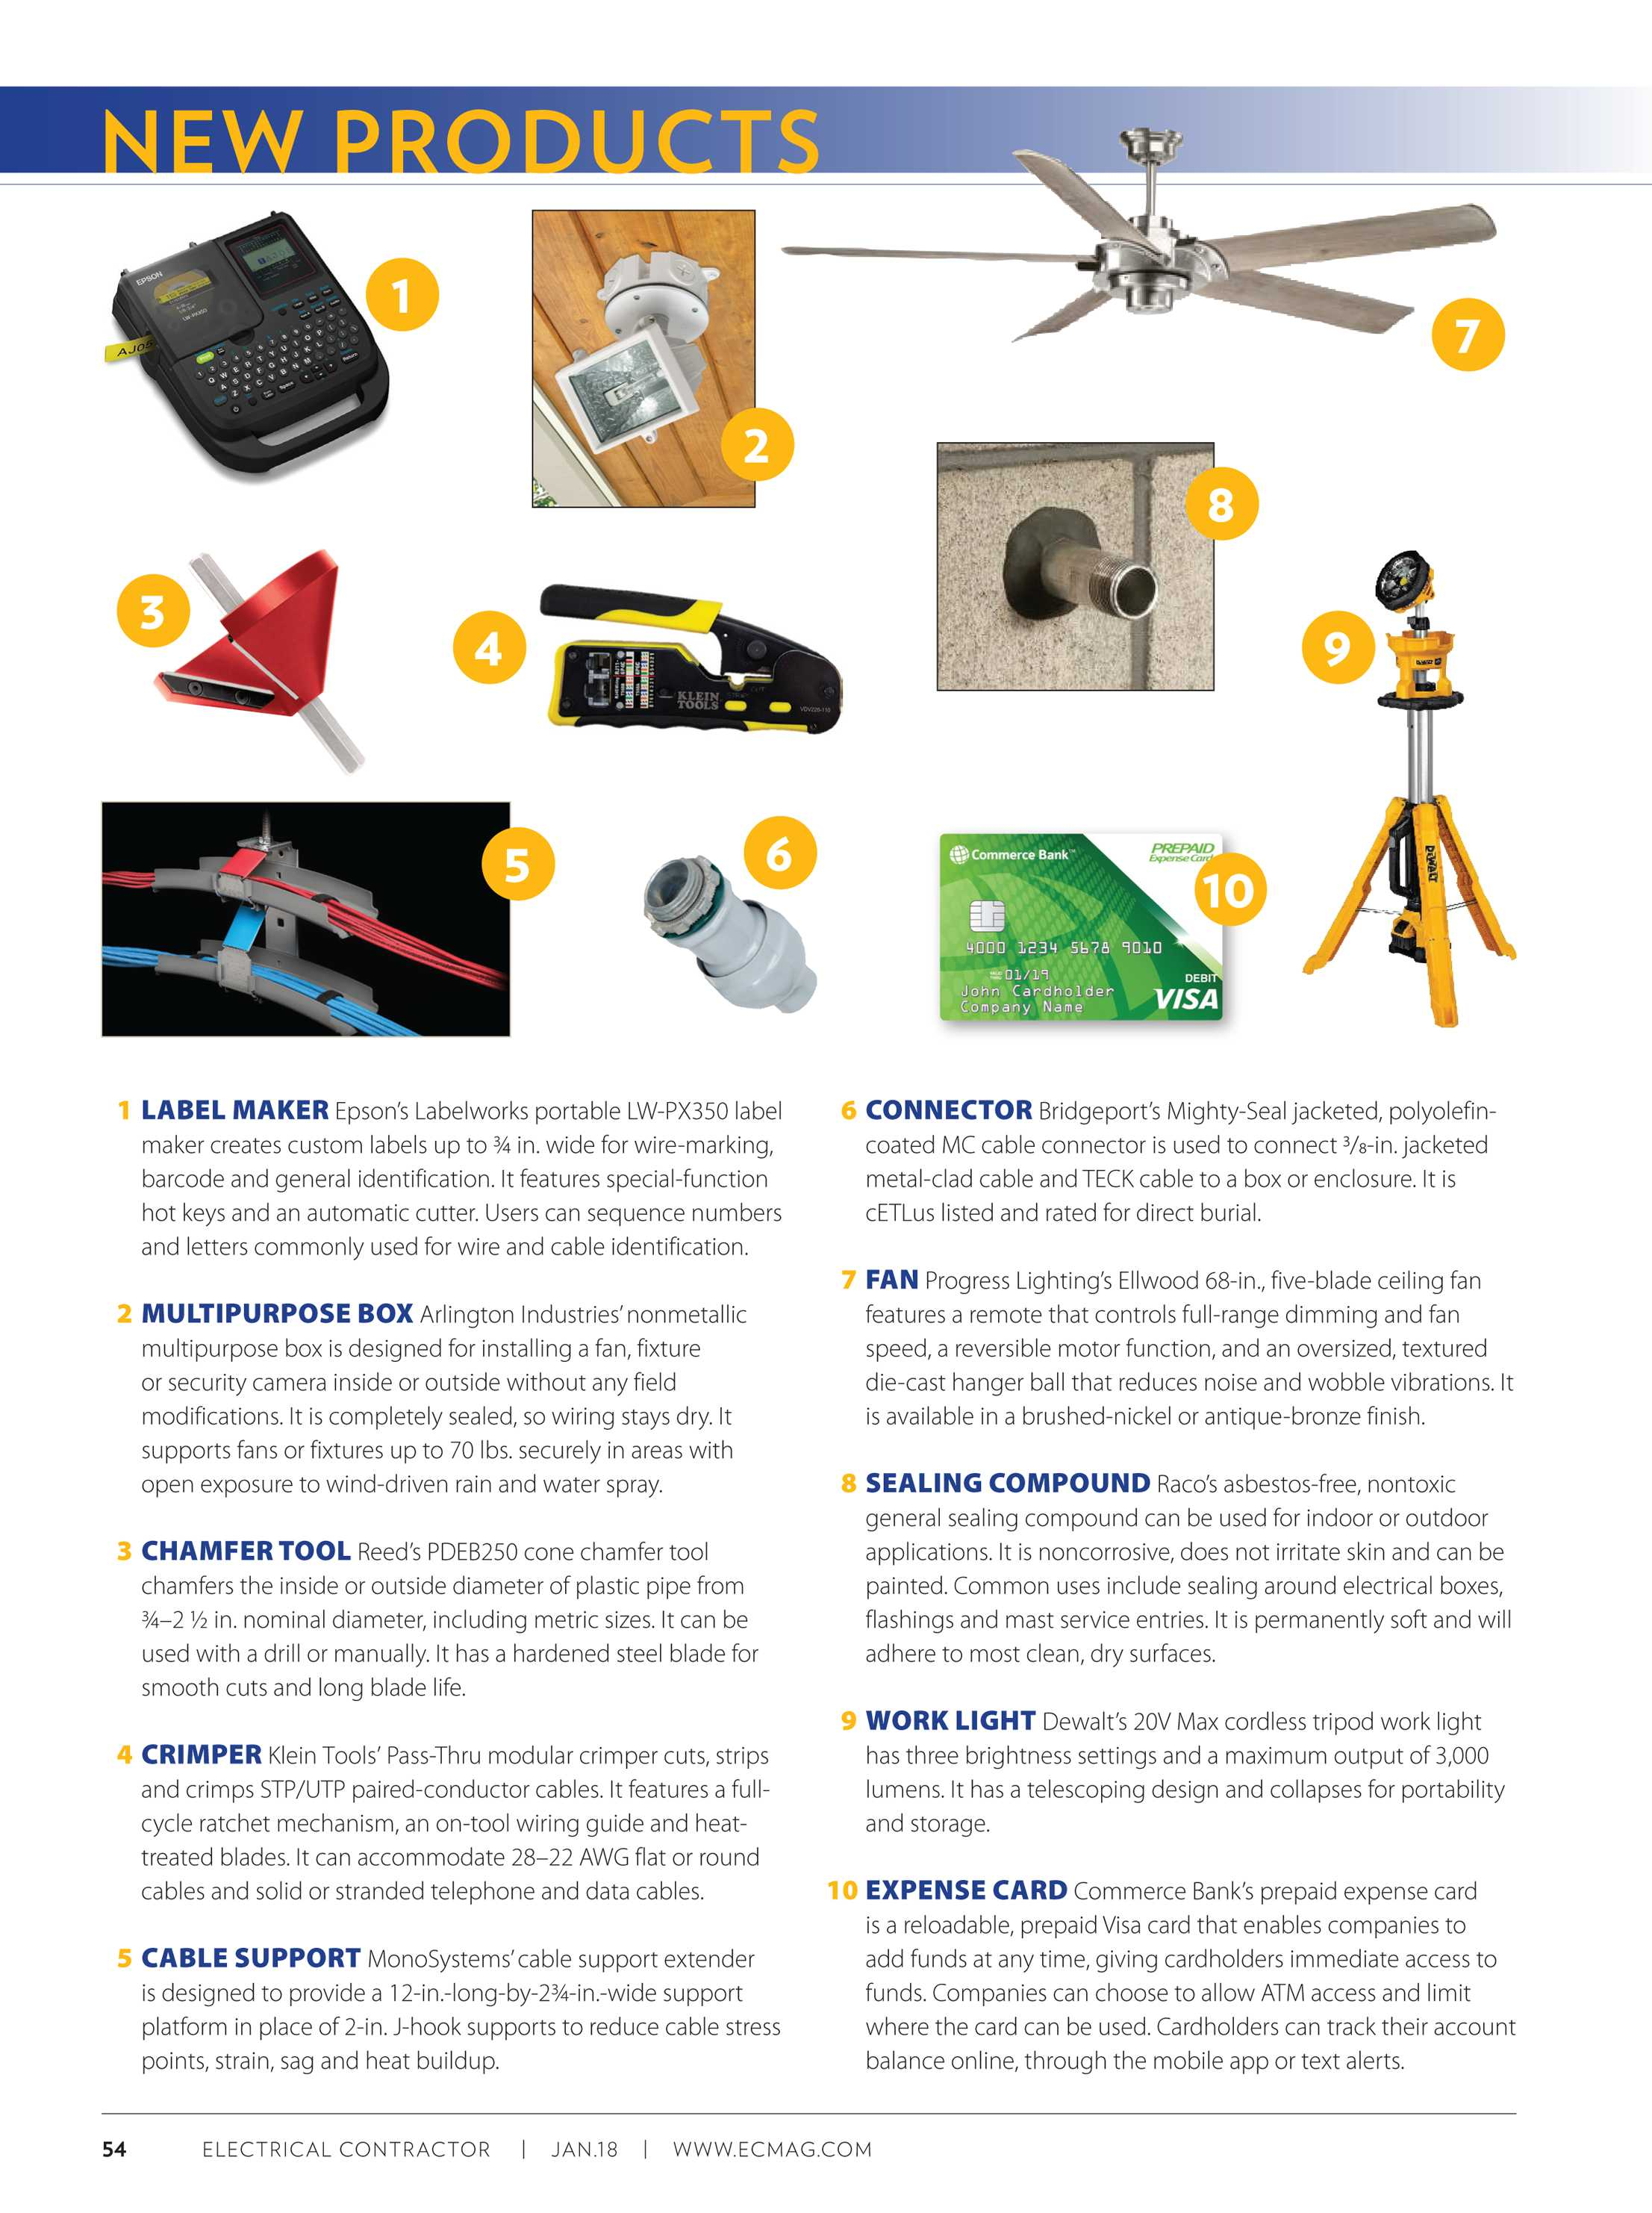 Electrical Contractor - July 2018 - page 54